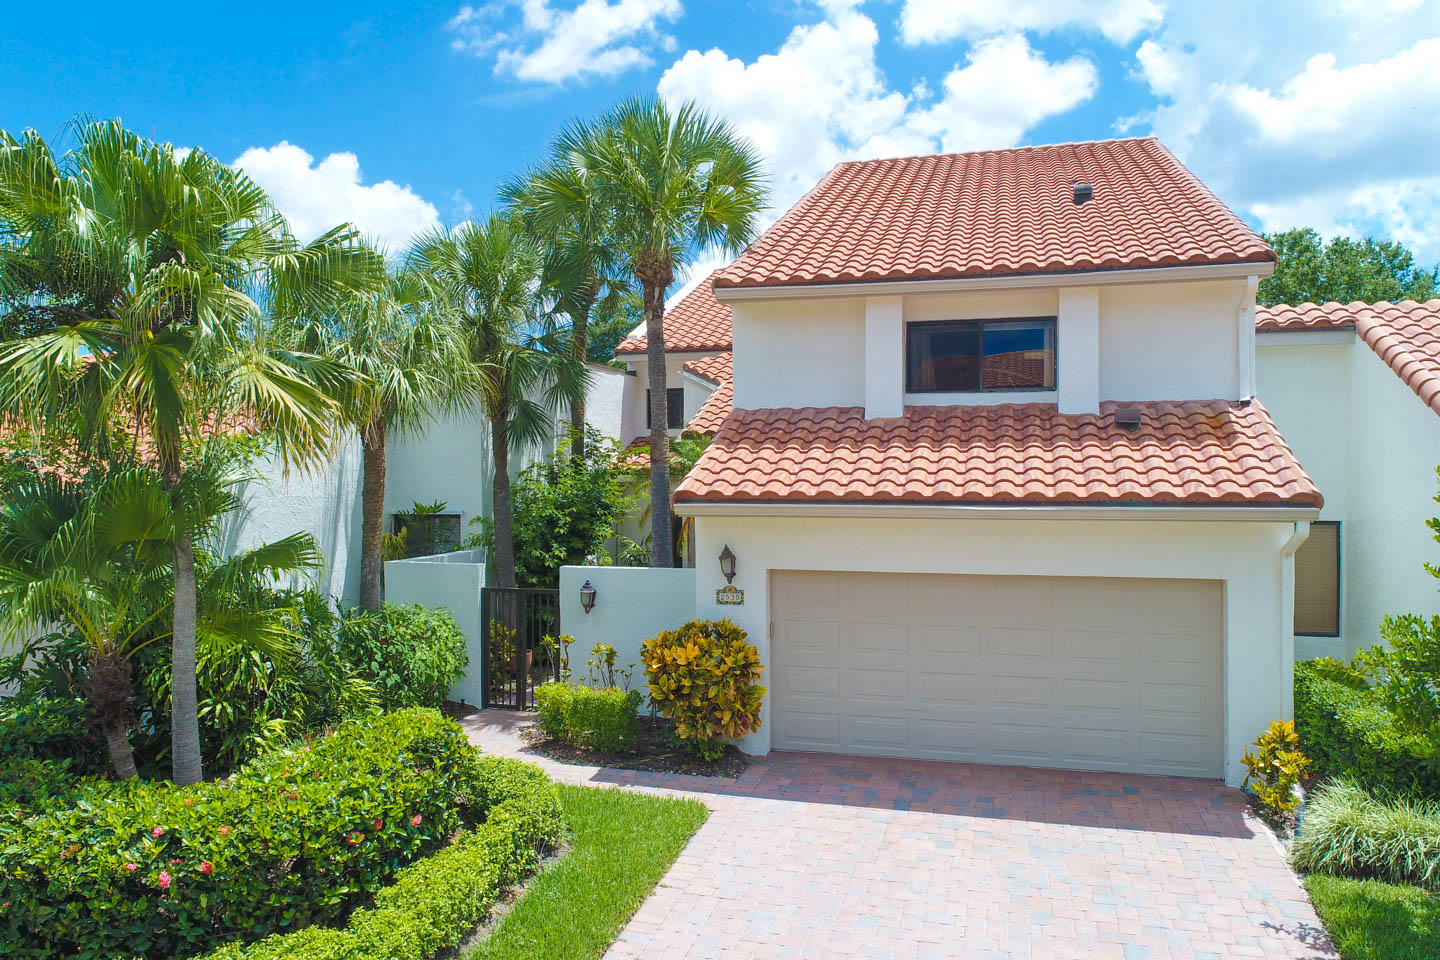 2530 Windsor Way, Wellington, Florida 33414, 4 Bedrooms Bedrooms, ,4.1 BathroomsBathrooms,Townhouse,For Rent,Palm Beach Polo,Windsor,1,RX-10512585